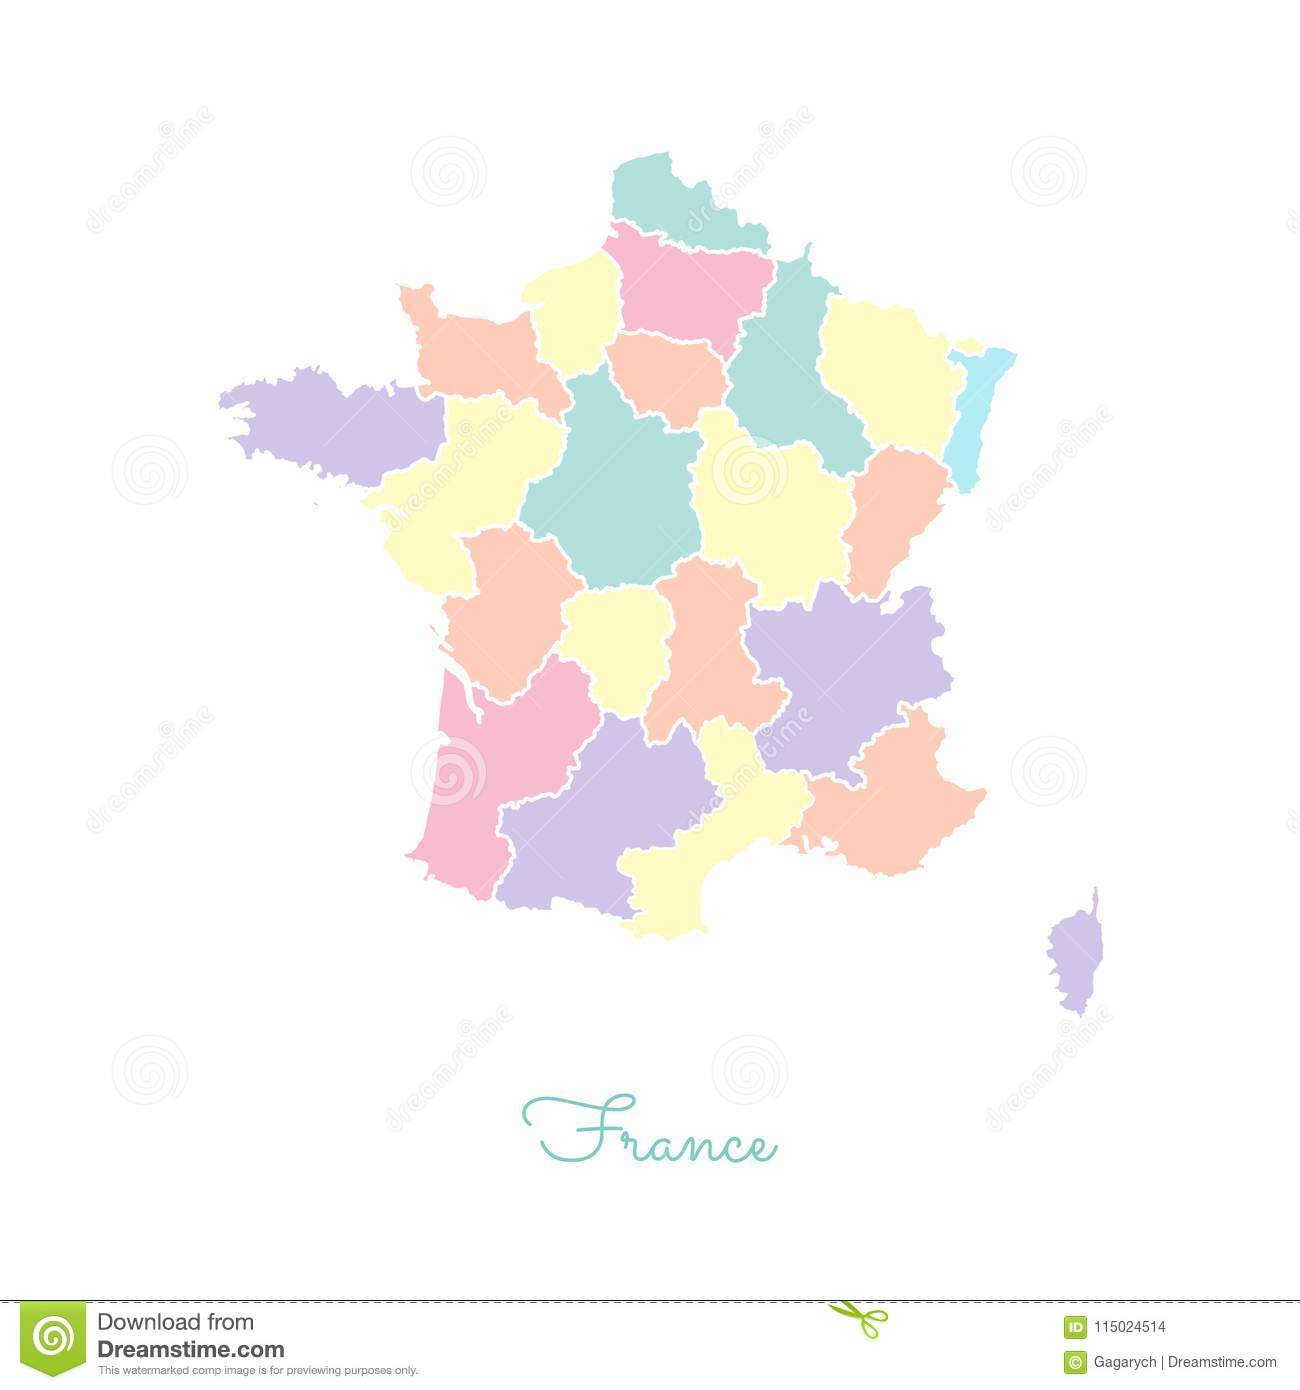 Detailed Map Of France Regions.France Region Map Colorful With White Outline Stock Vector